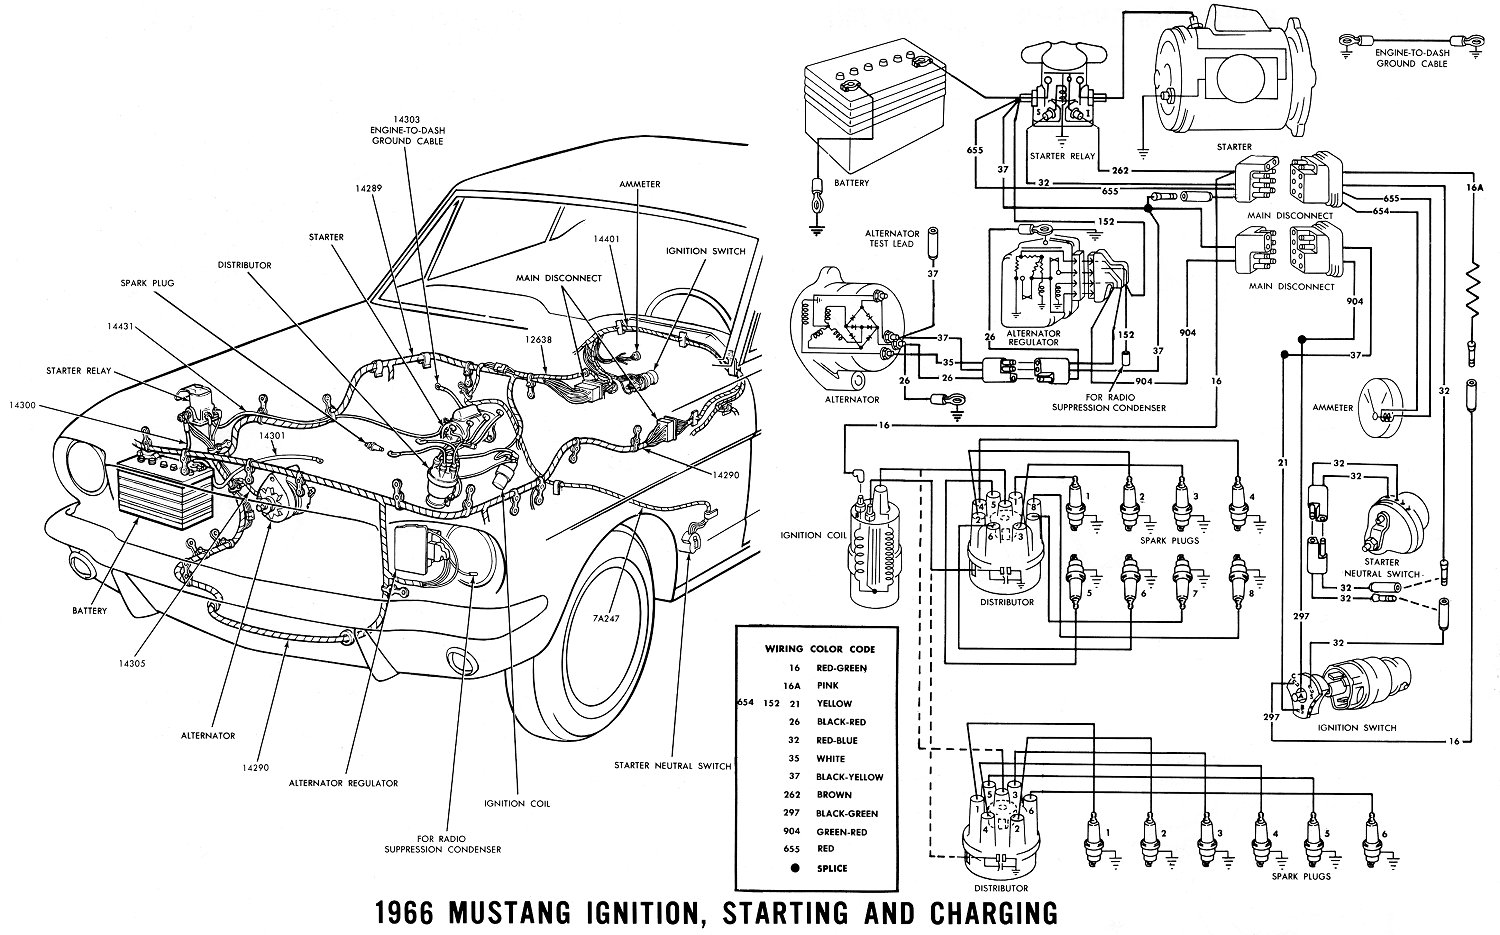 hight resolution of 1966 mustang wiring diagrams average joe restoration 1984 jeep cherokee starter solenoid wiring 1996 jeep cherokee starter relay